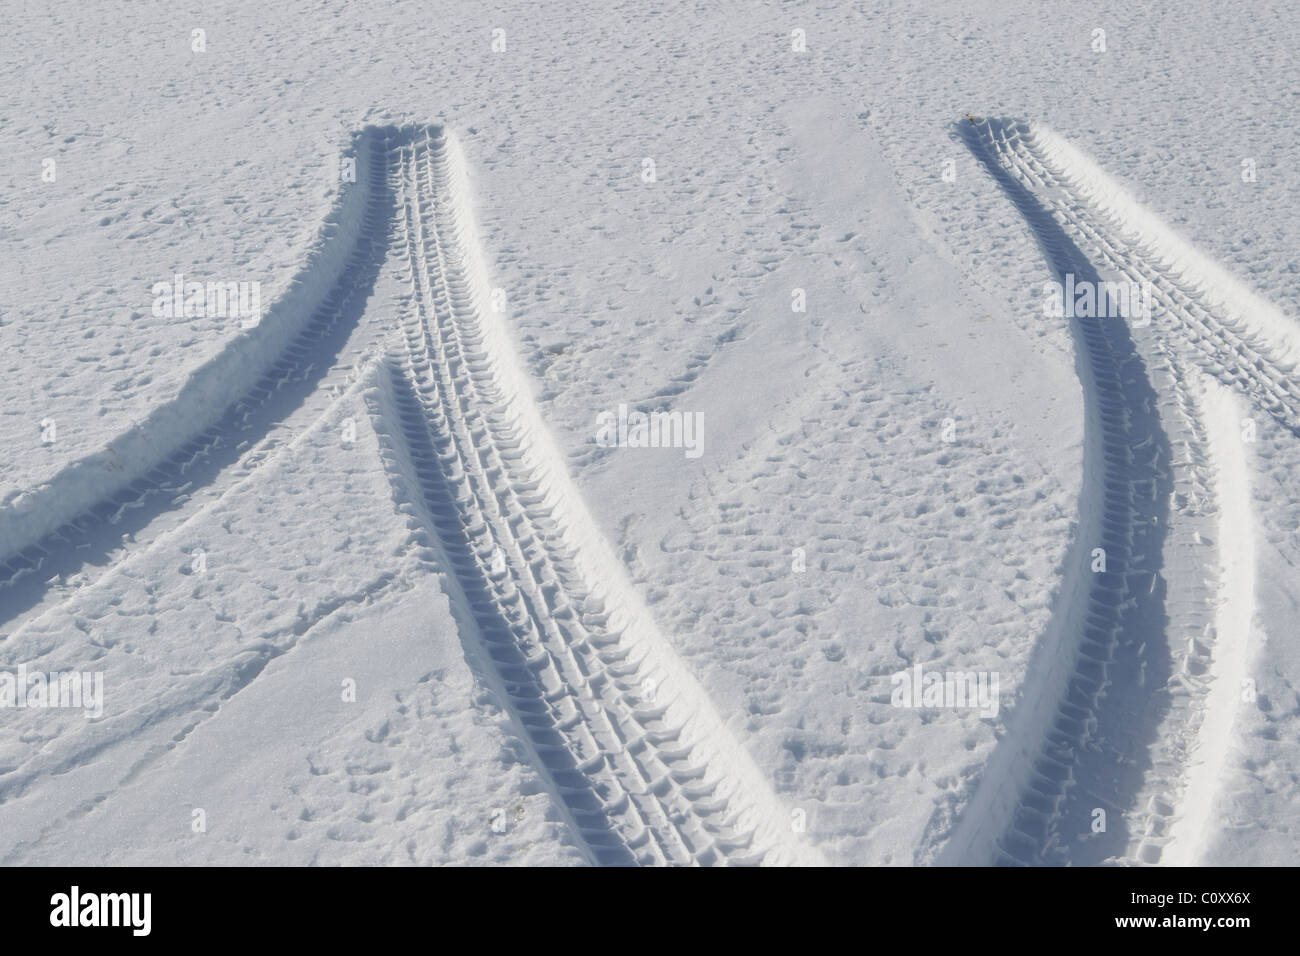 Tire tracks in the snow record the evidence of backing and leaving. - Stock Image